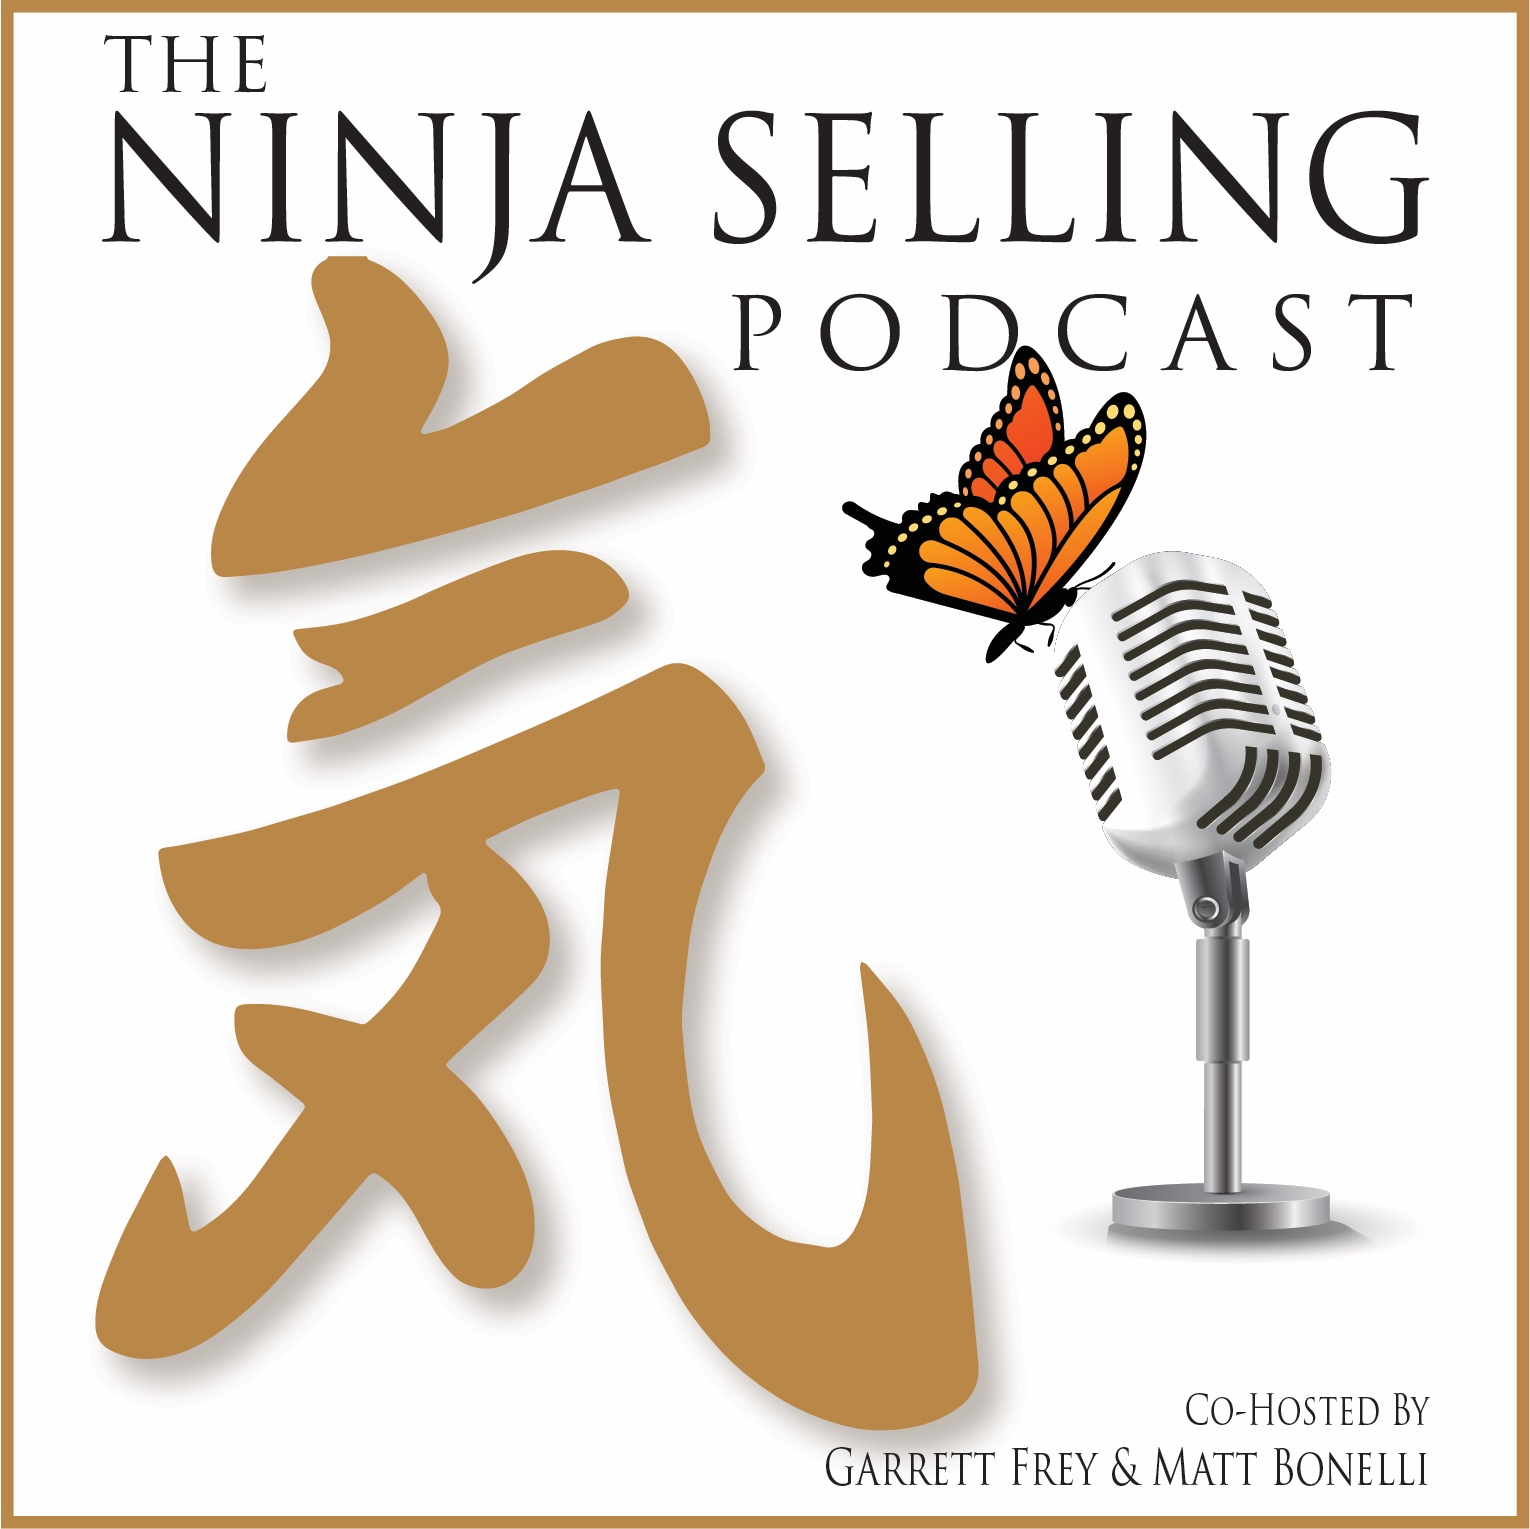 The Ninja Selling Podcast show art